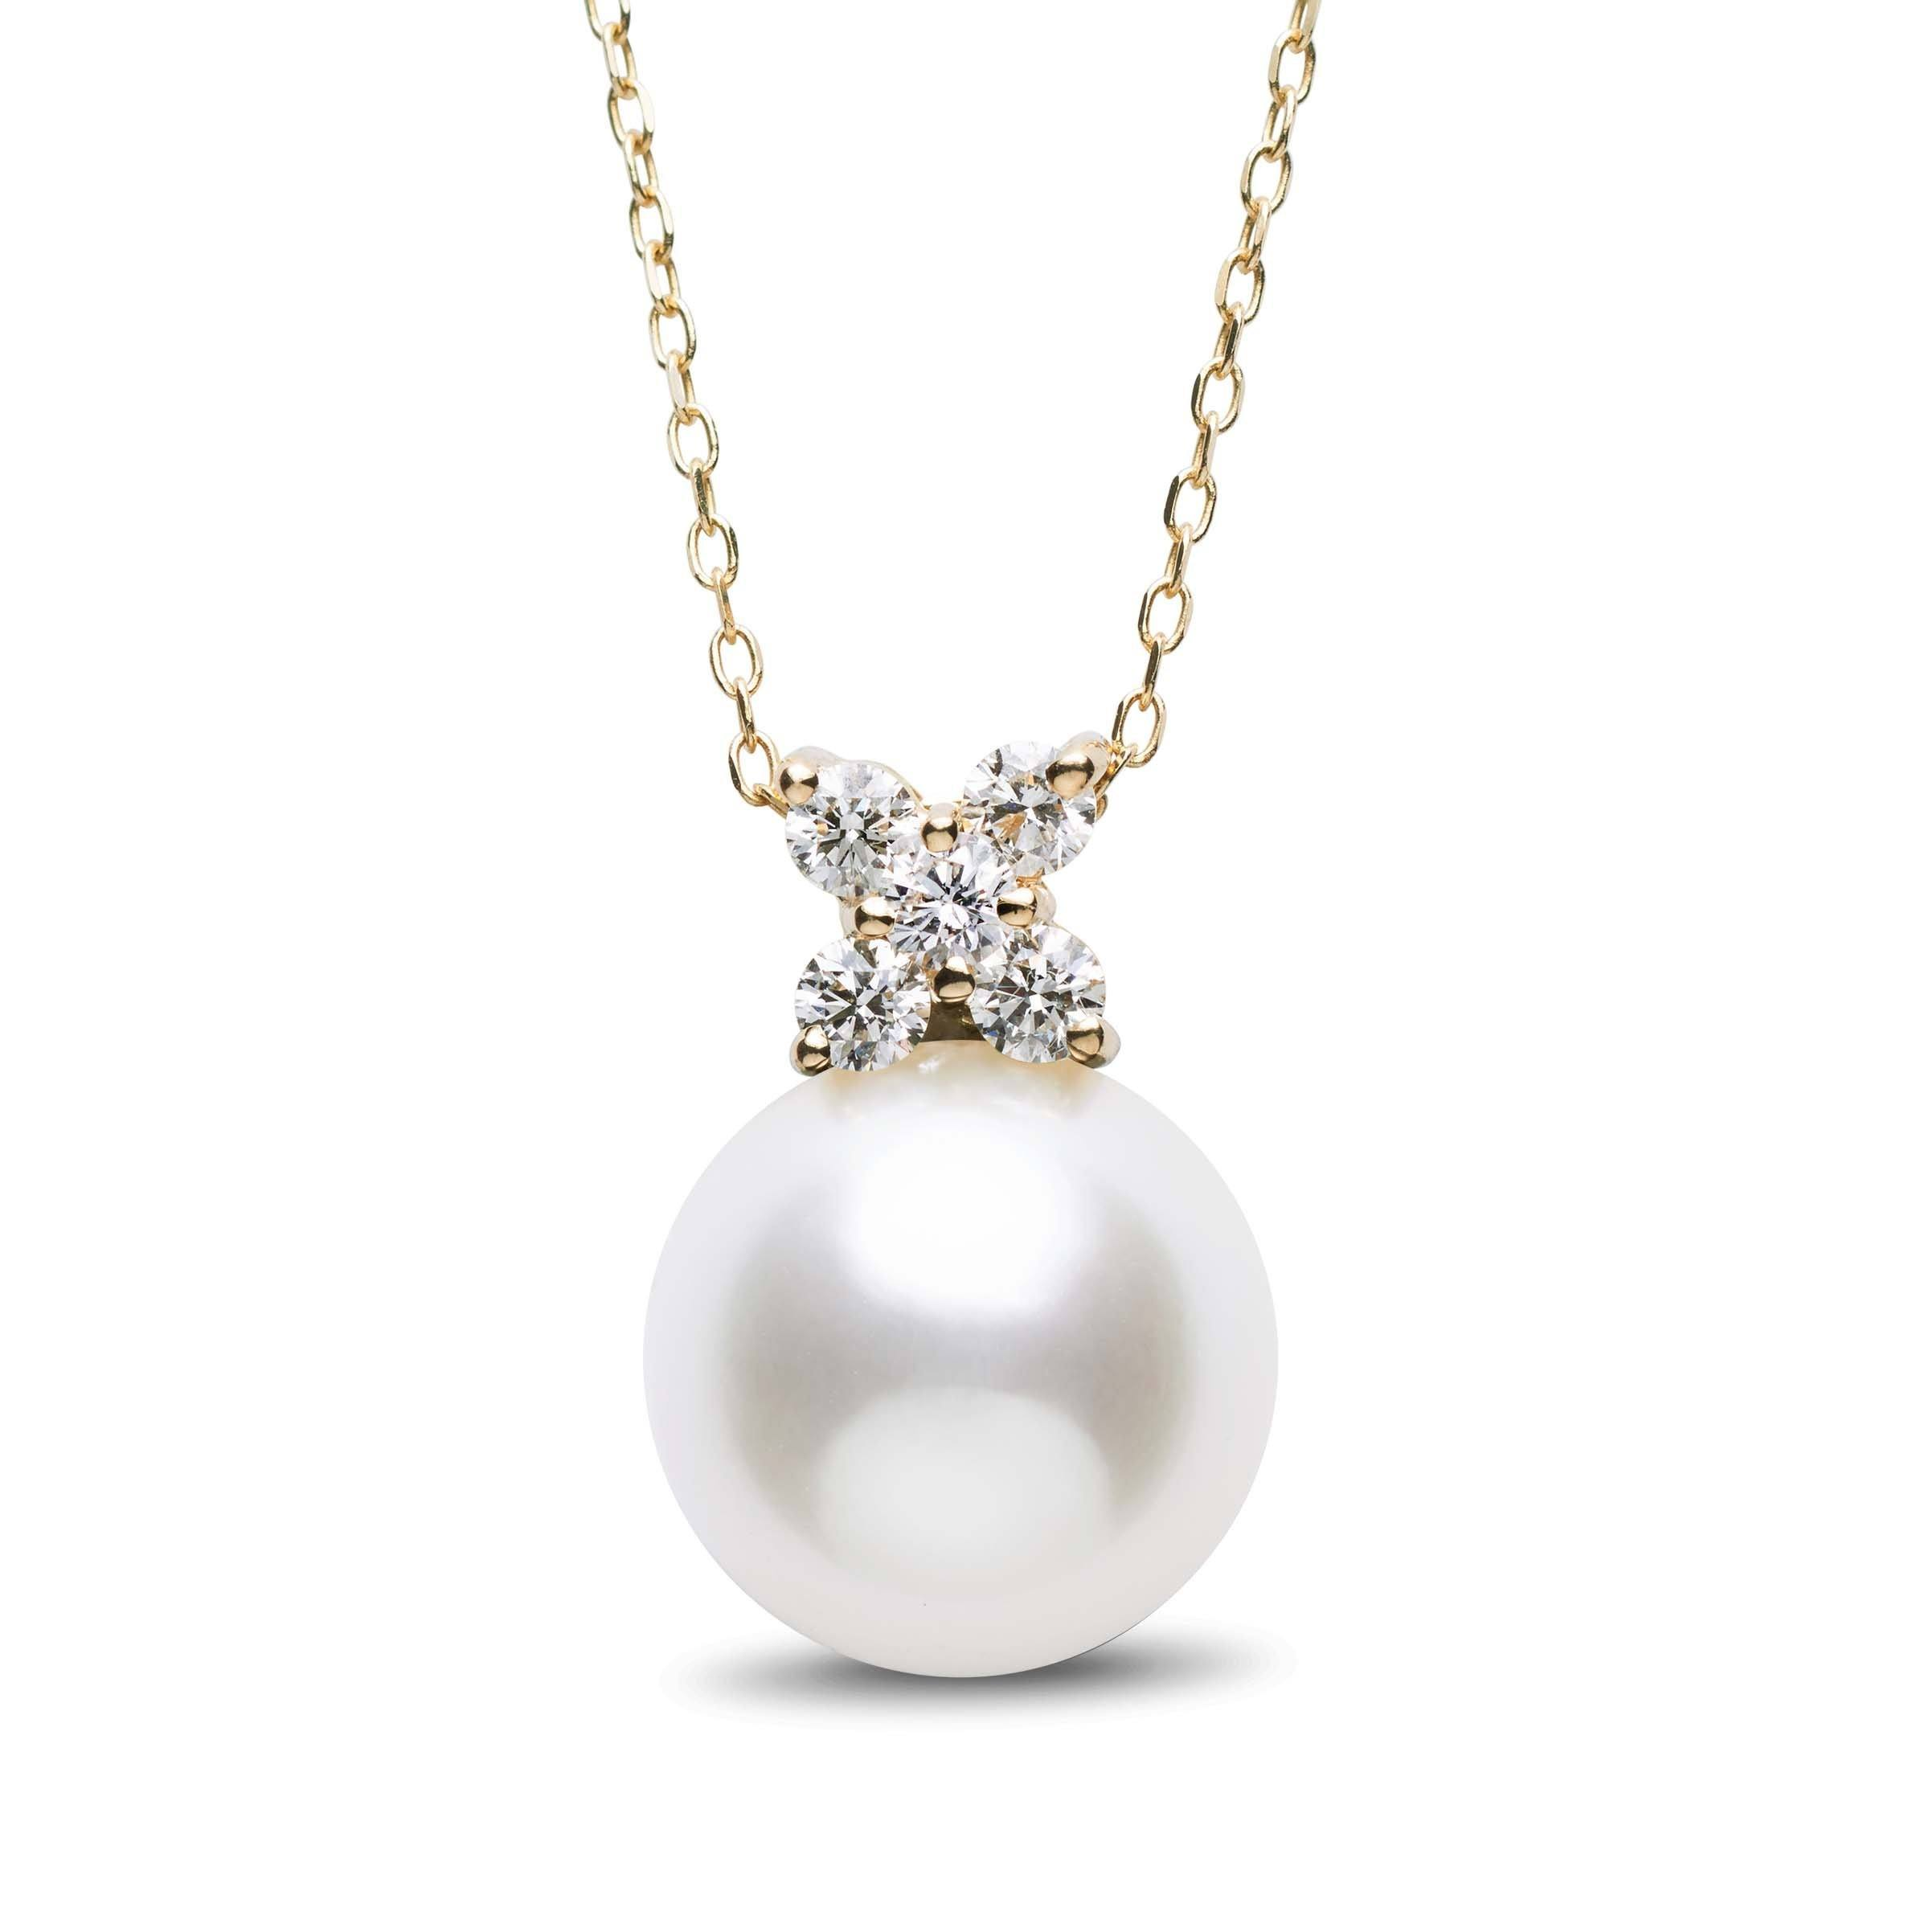 Kiss Collection 12.0-13.0 mm White South Sea Pearl and Diamond Pendant